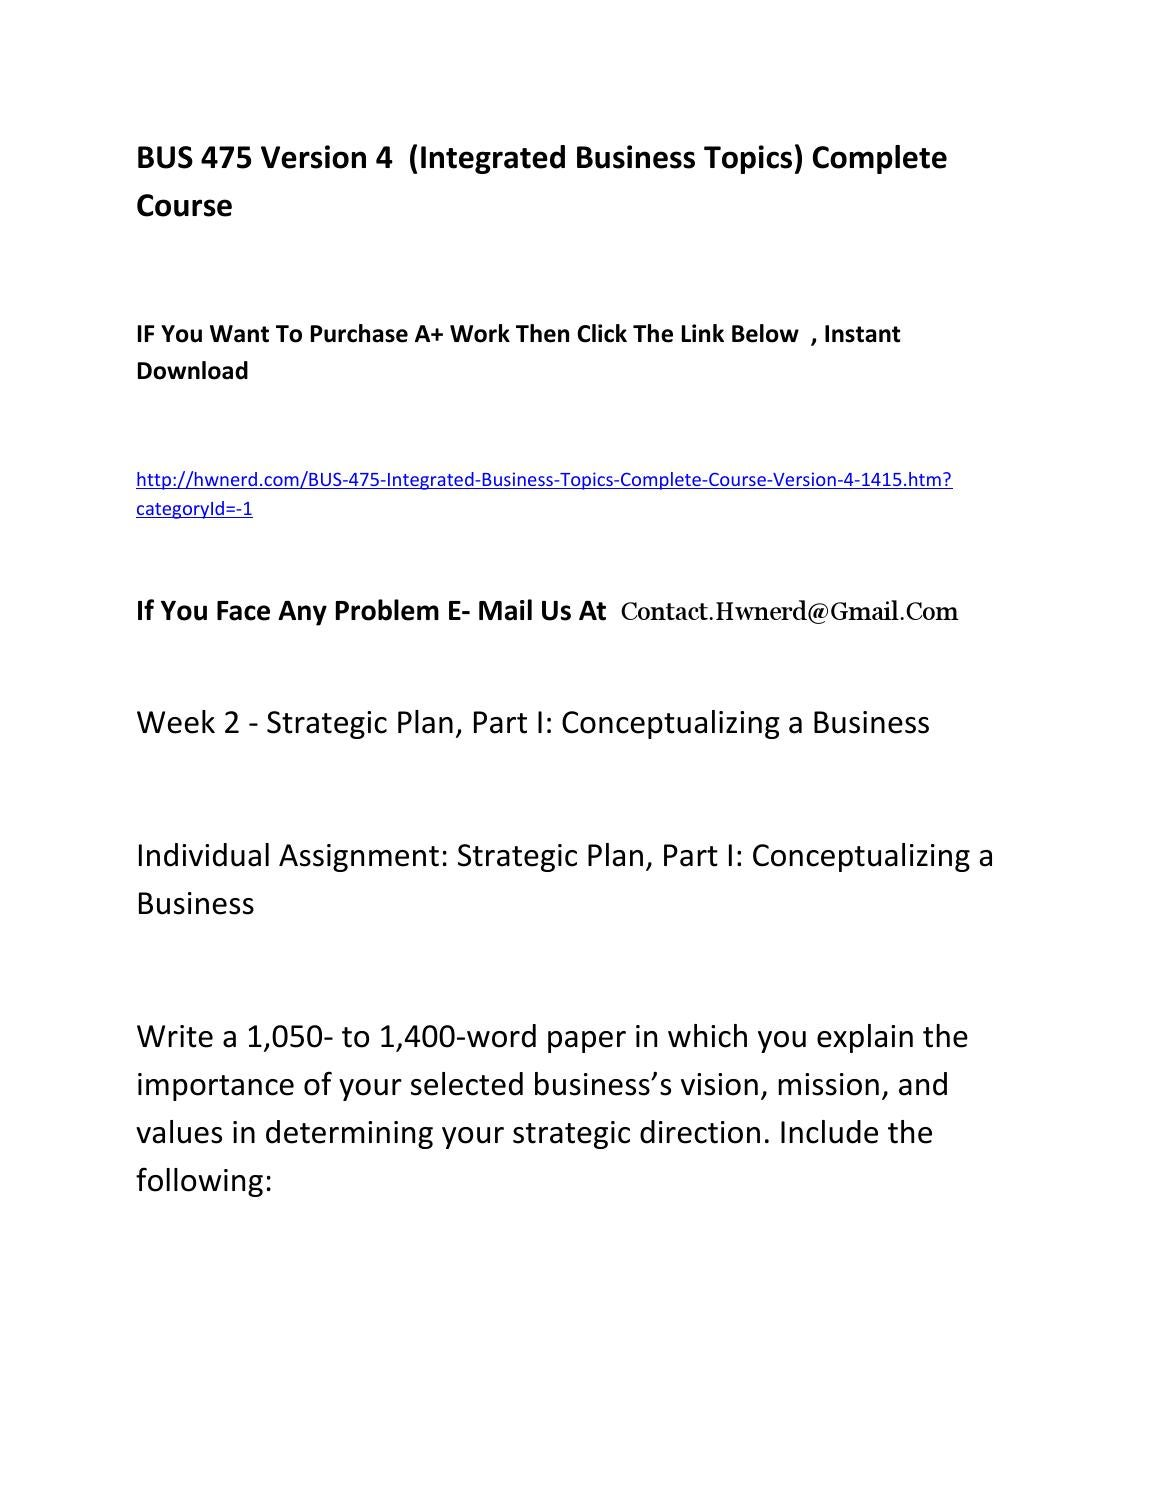 conceptualizing a business bus 475 Bus 475 week 2 individual assignment strategic plan, part i conceptualizing a business writea 1,050- to 1,400-word paper in which you explain the importance of your selected business's vision, mission, and values in determining your strategic direction.